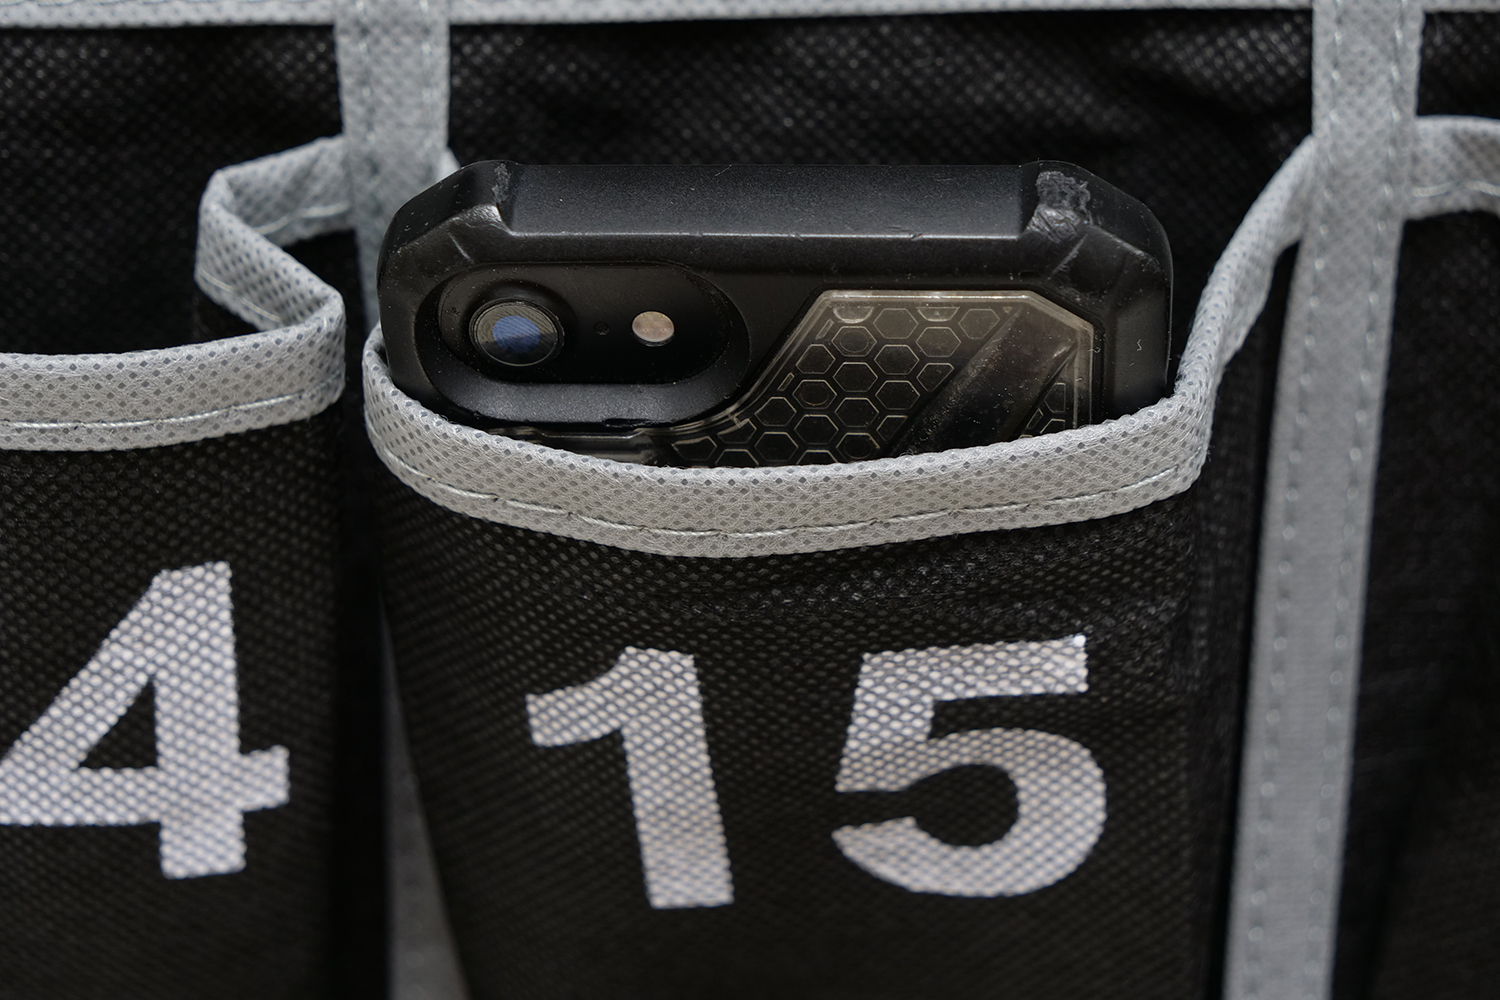 Teachers are beginning to crack down on phones not being in the pouches.